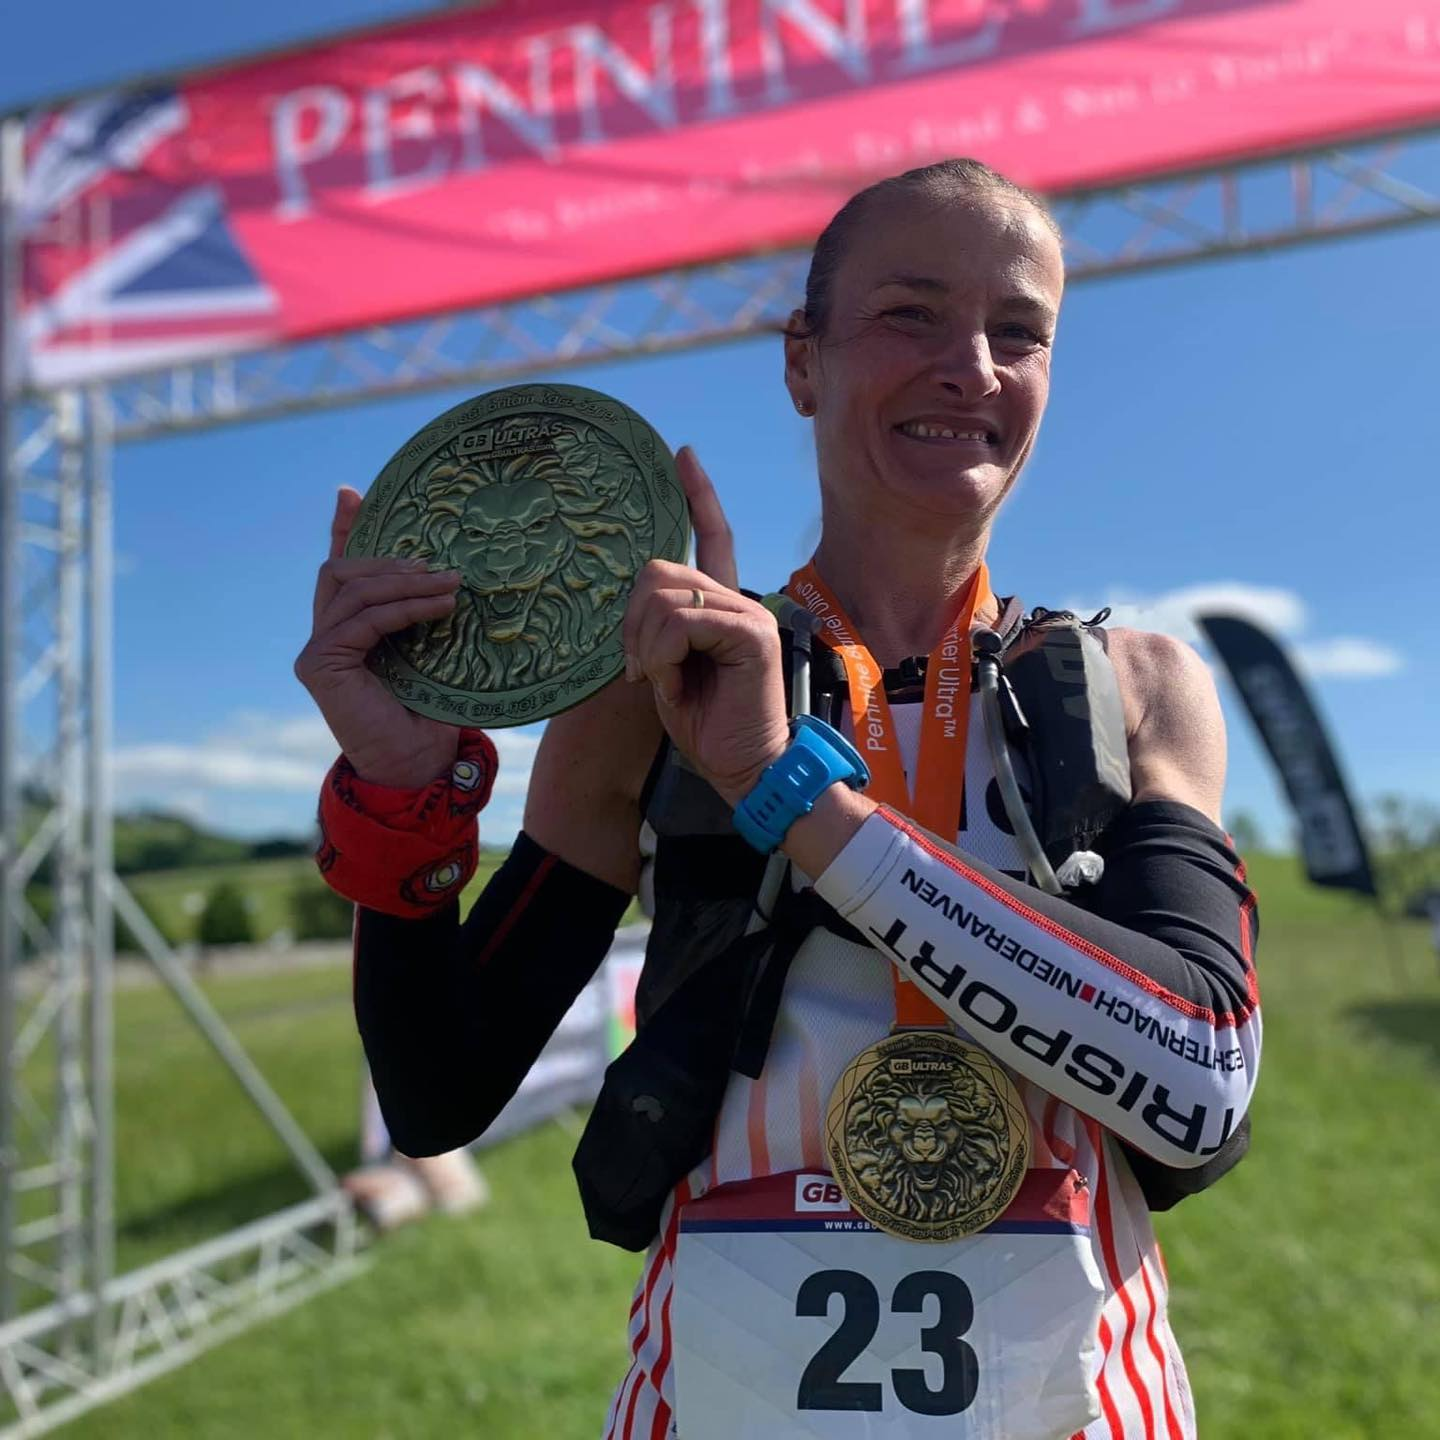 Lorraine Slater 1st lady and new CR Pennine Barrier Ultra